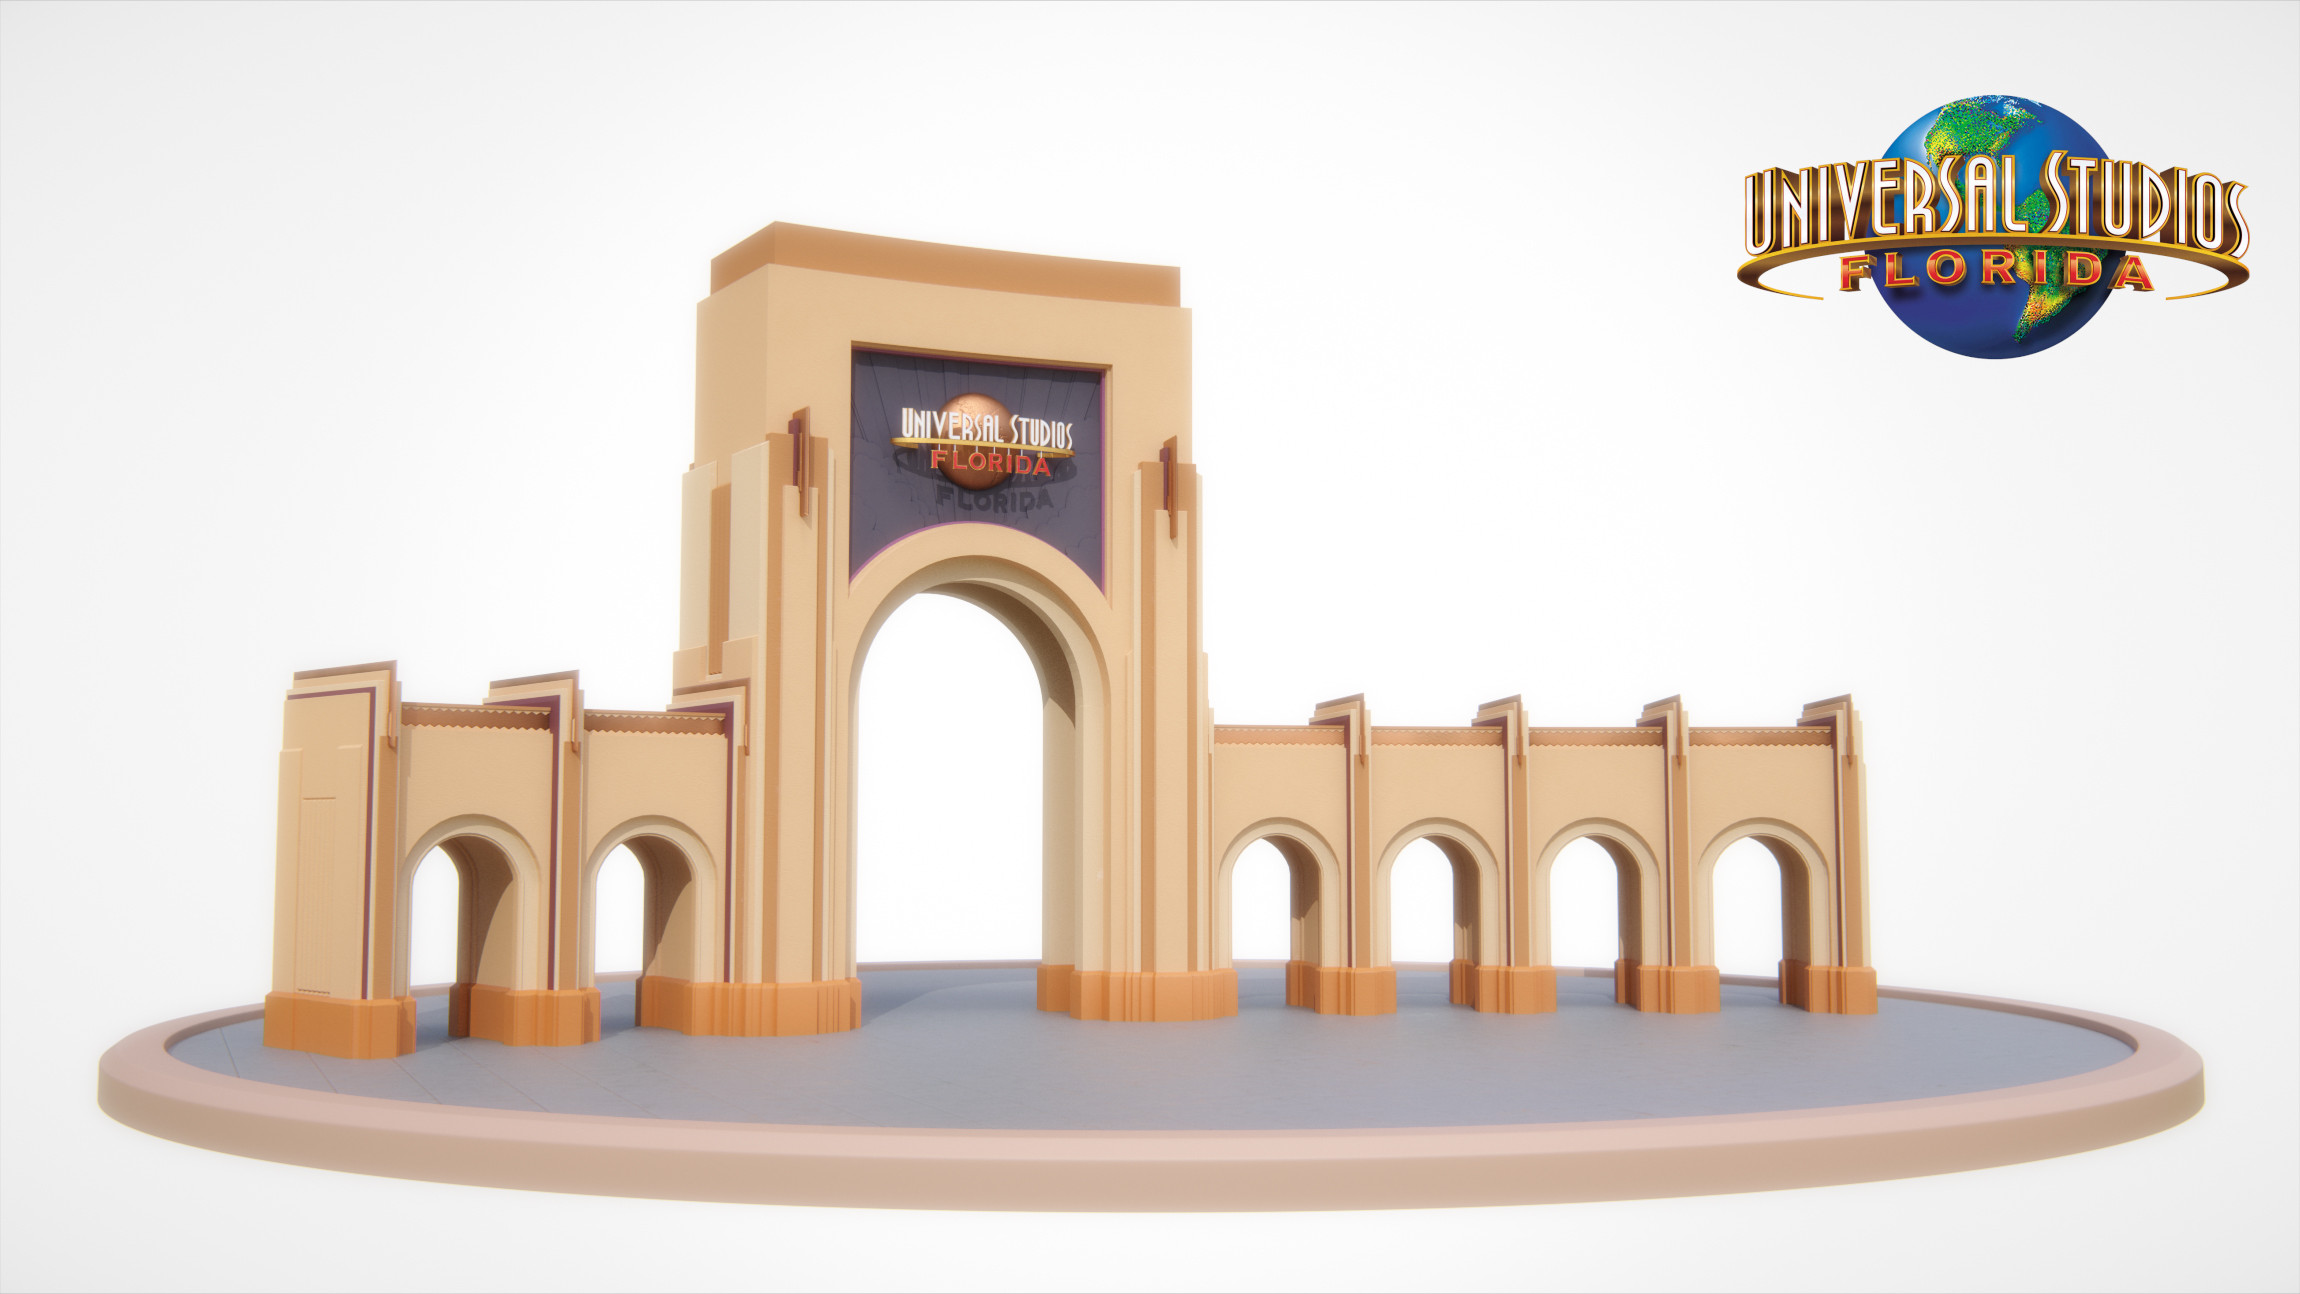 Universal Studios Florida - Entrance Archway - Beauty